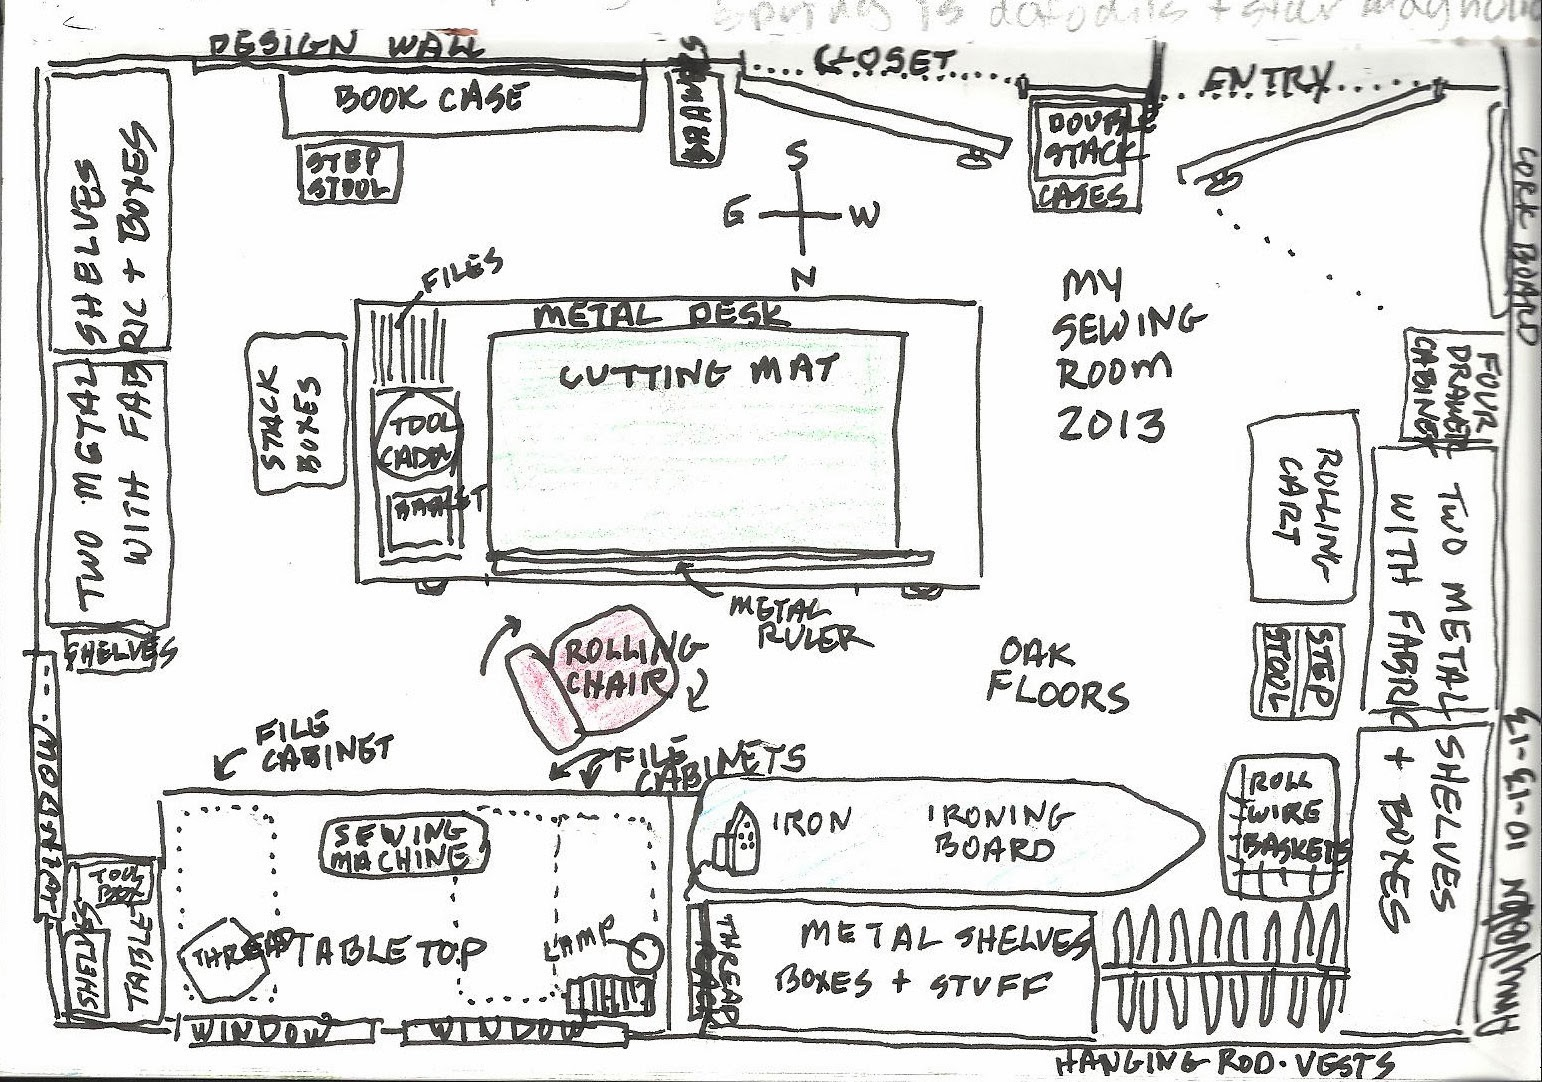 Amy 39 s etcetera sewing room diagram Make a room layout